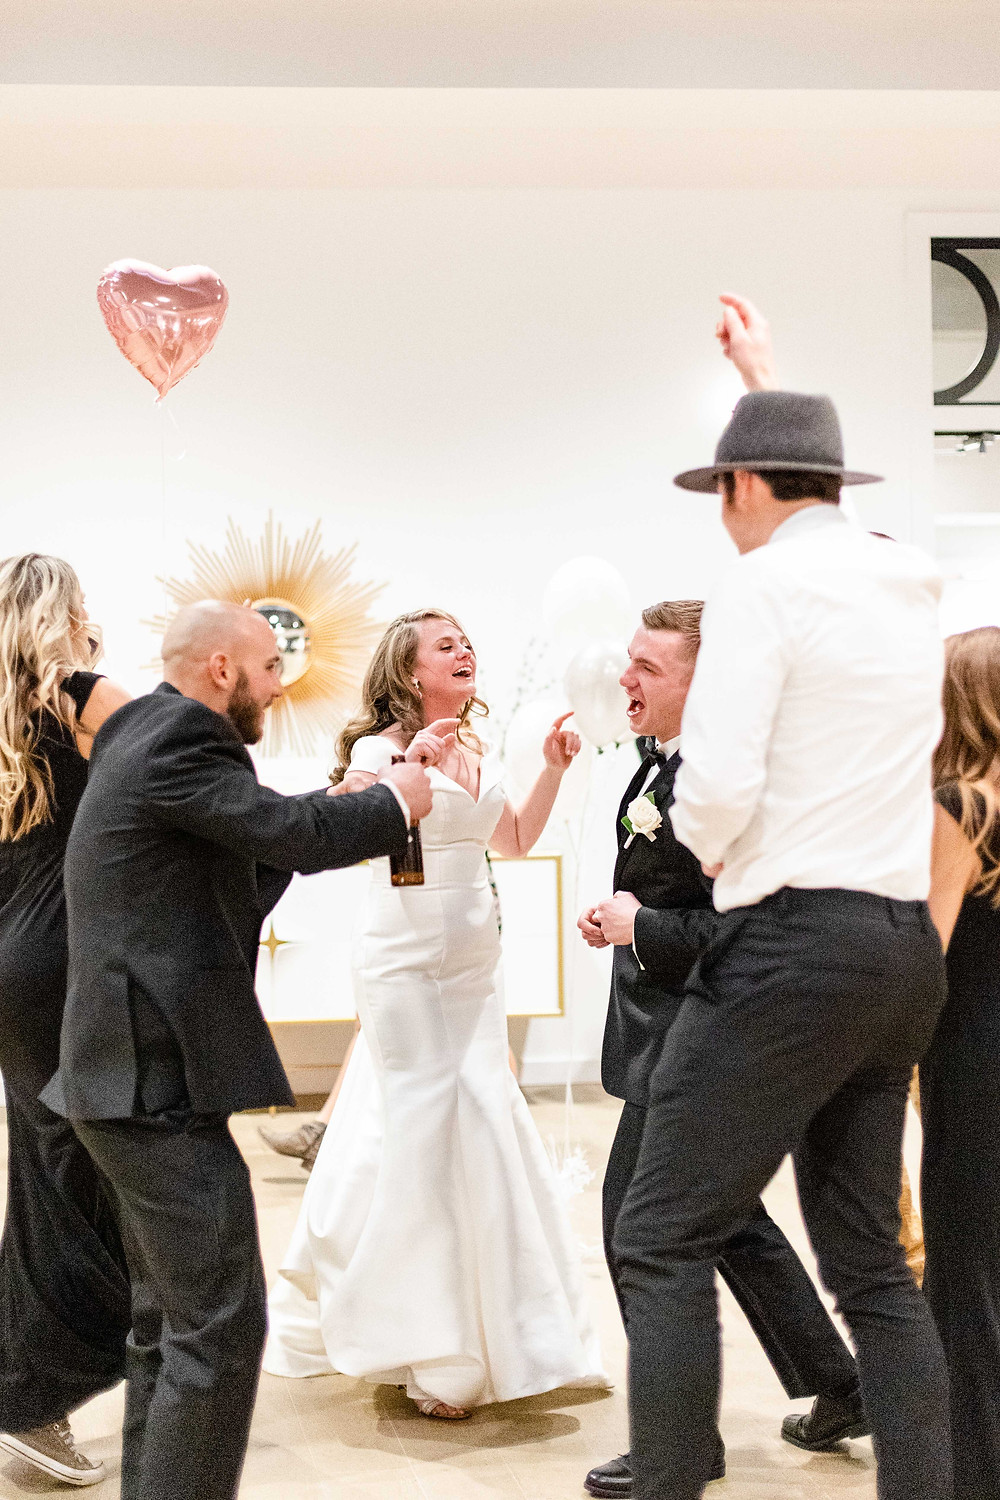 Josh and Andrea wedding photography husband and wife photographer team michigan venue Bay Pointe Woods shelbyville snow winter wedding reception bride and groom guests dancing